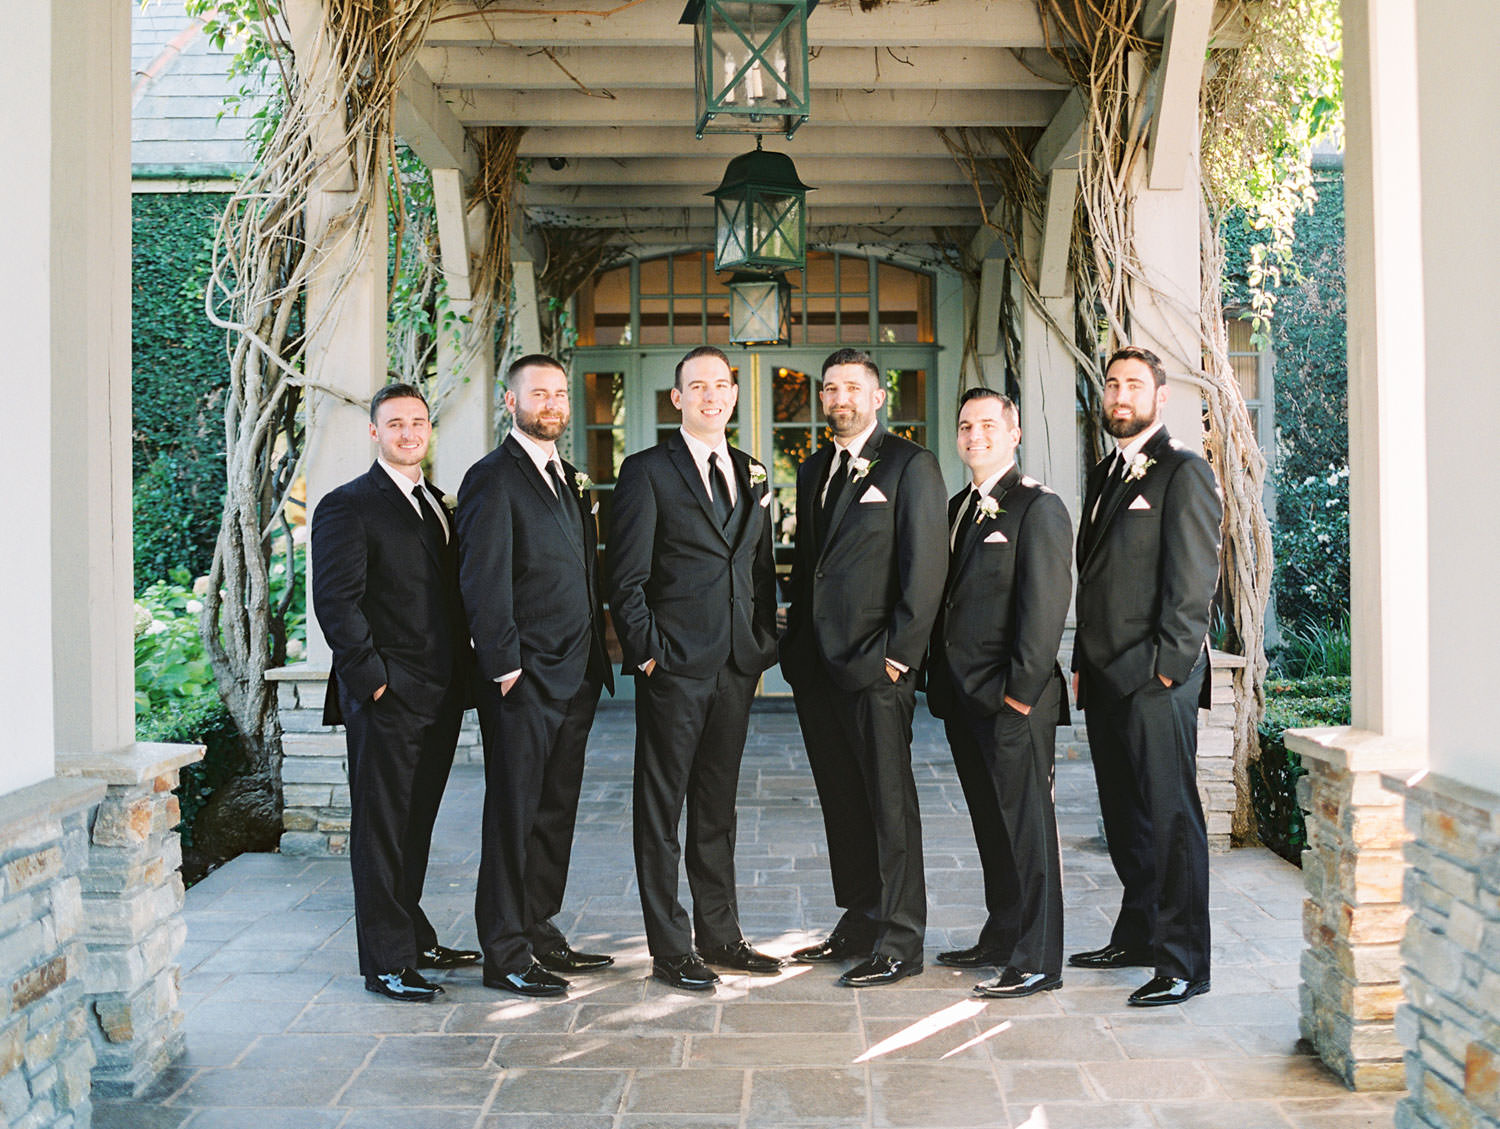 Portrait of groom with groomsmen in a black tuxedo with vest, Del Mar Country Club Wedding by Cavin Elizabeth Photography